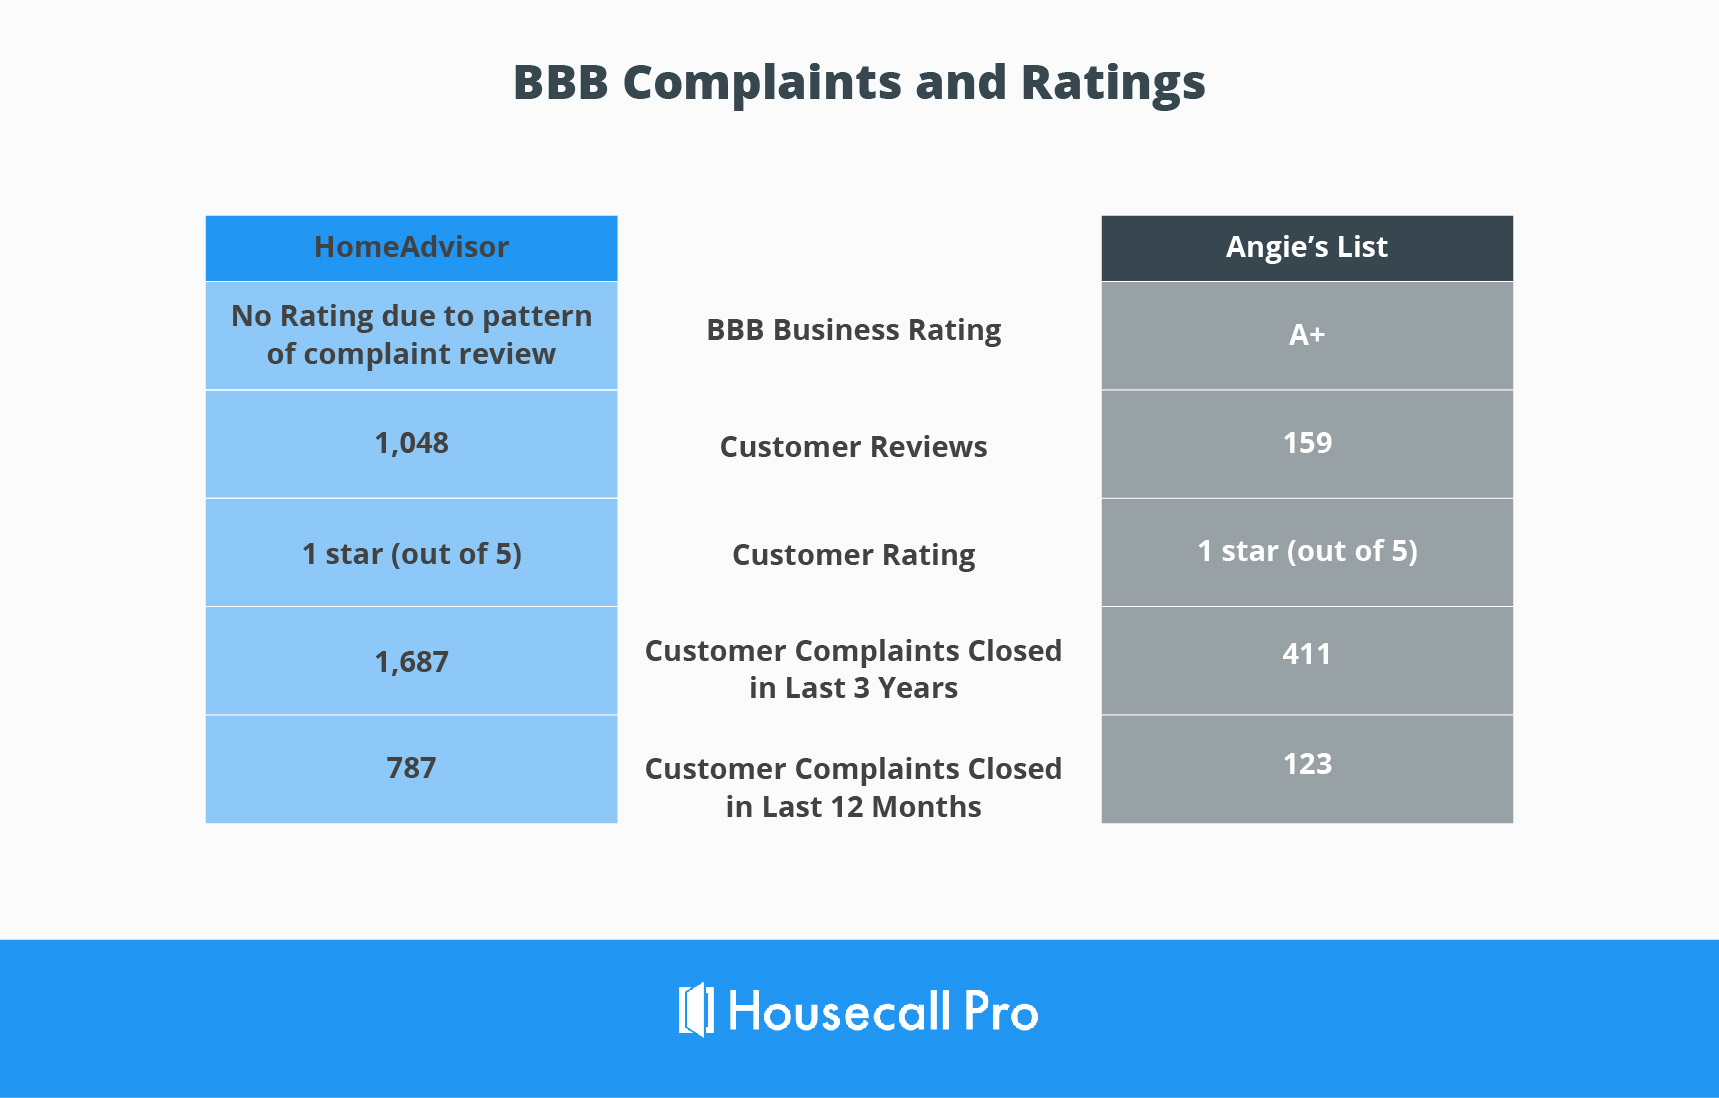 angie's list vs. homeadvisor bbb rating